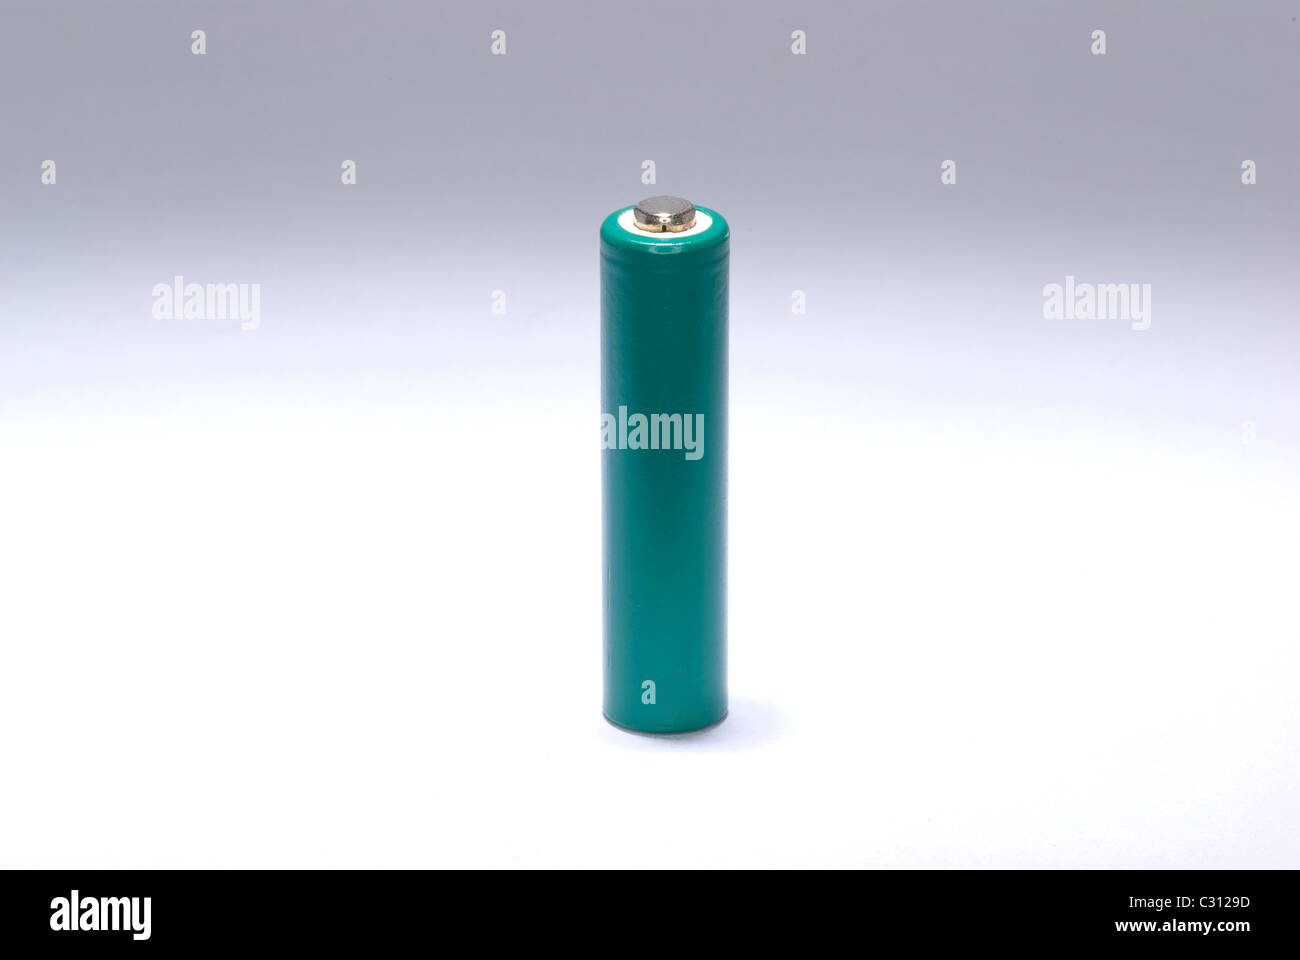 Rechargeable battery - Stock Image